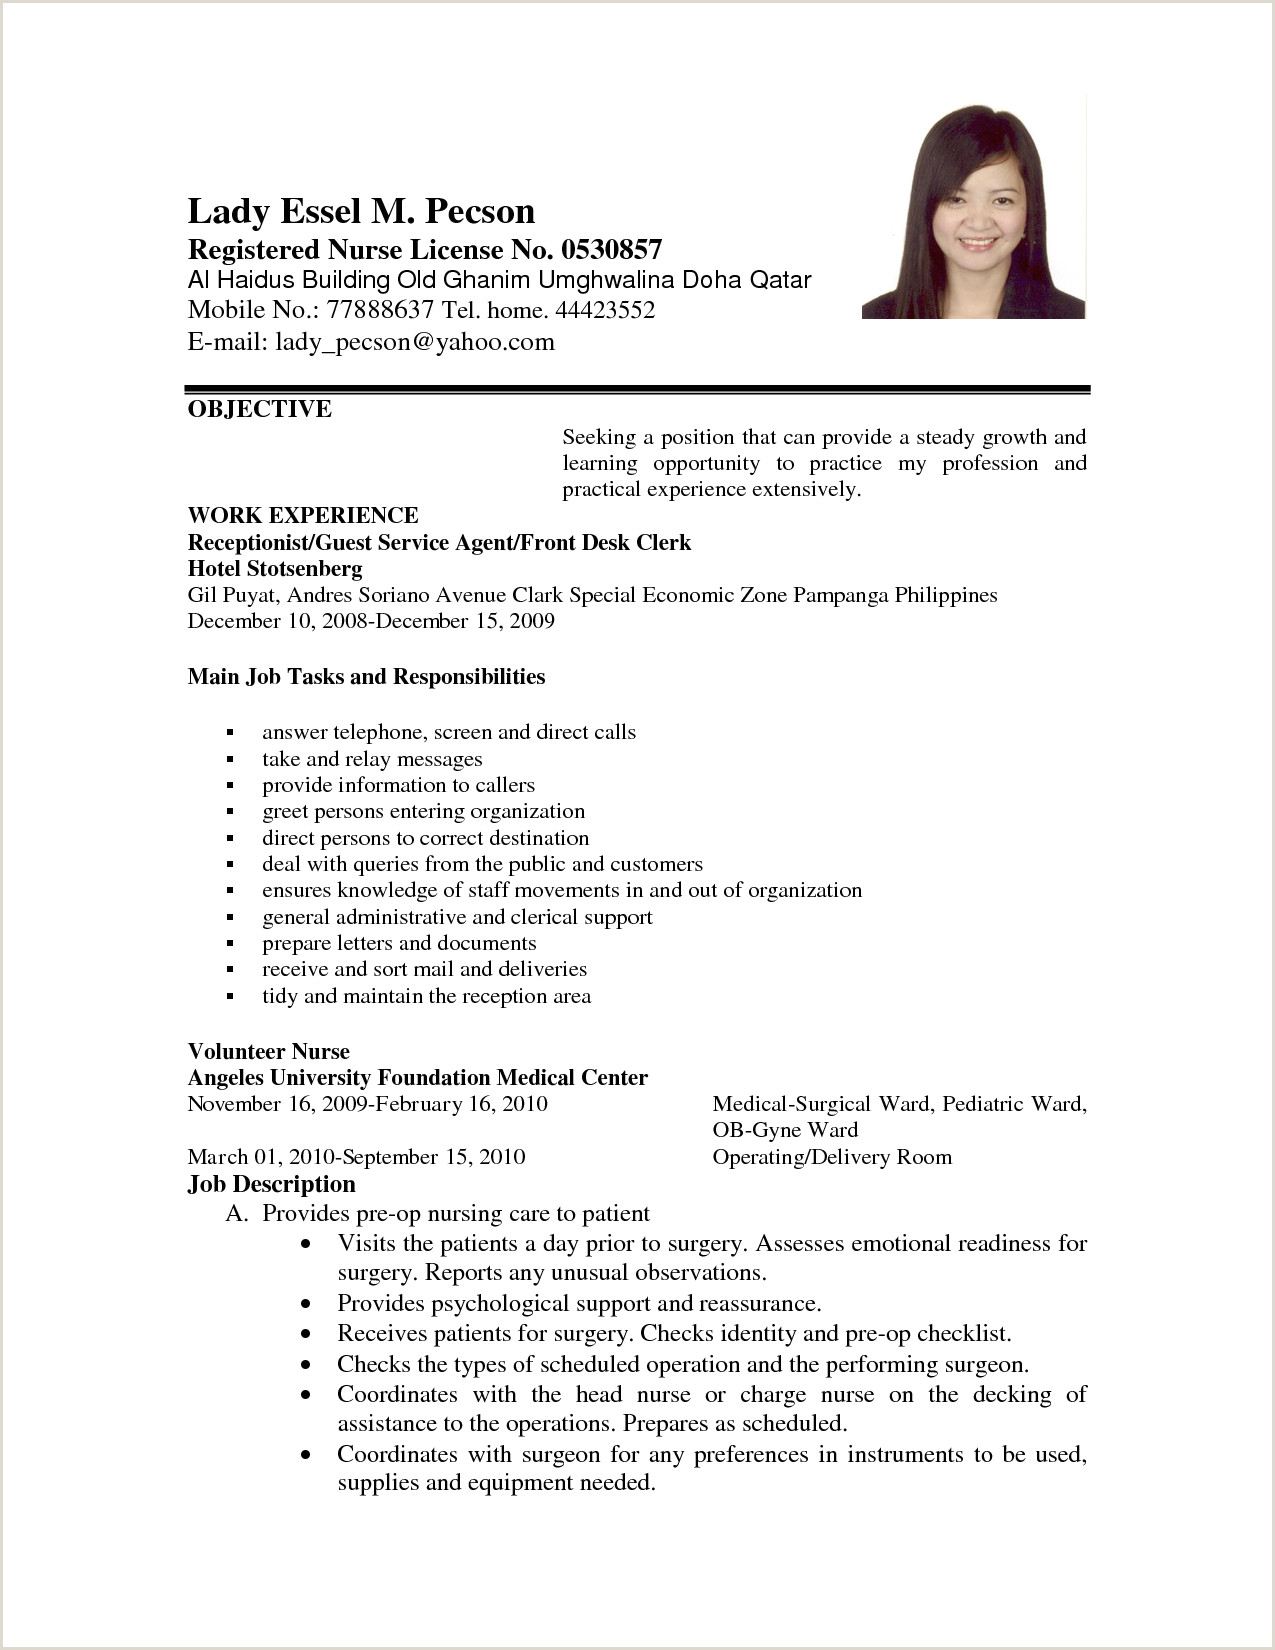 Resume format for Applying Job Pdf Application Letter format for Volunteer Nurse order Custom